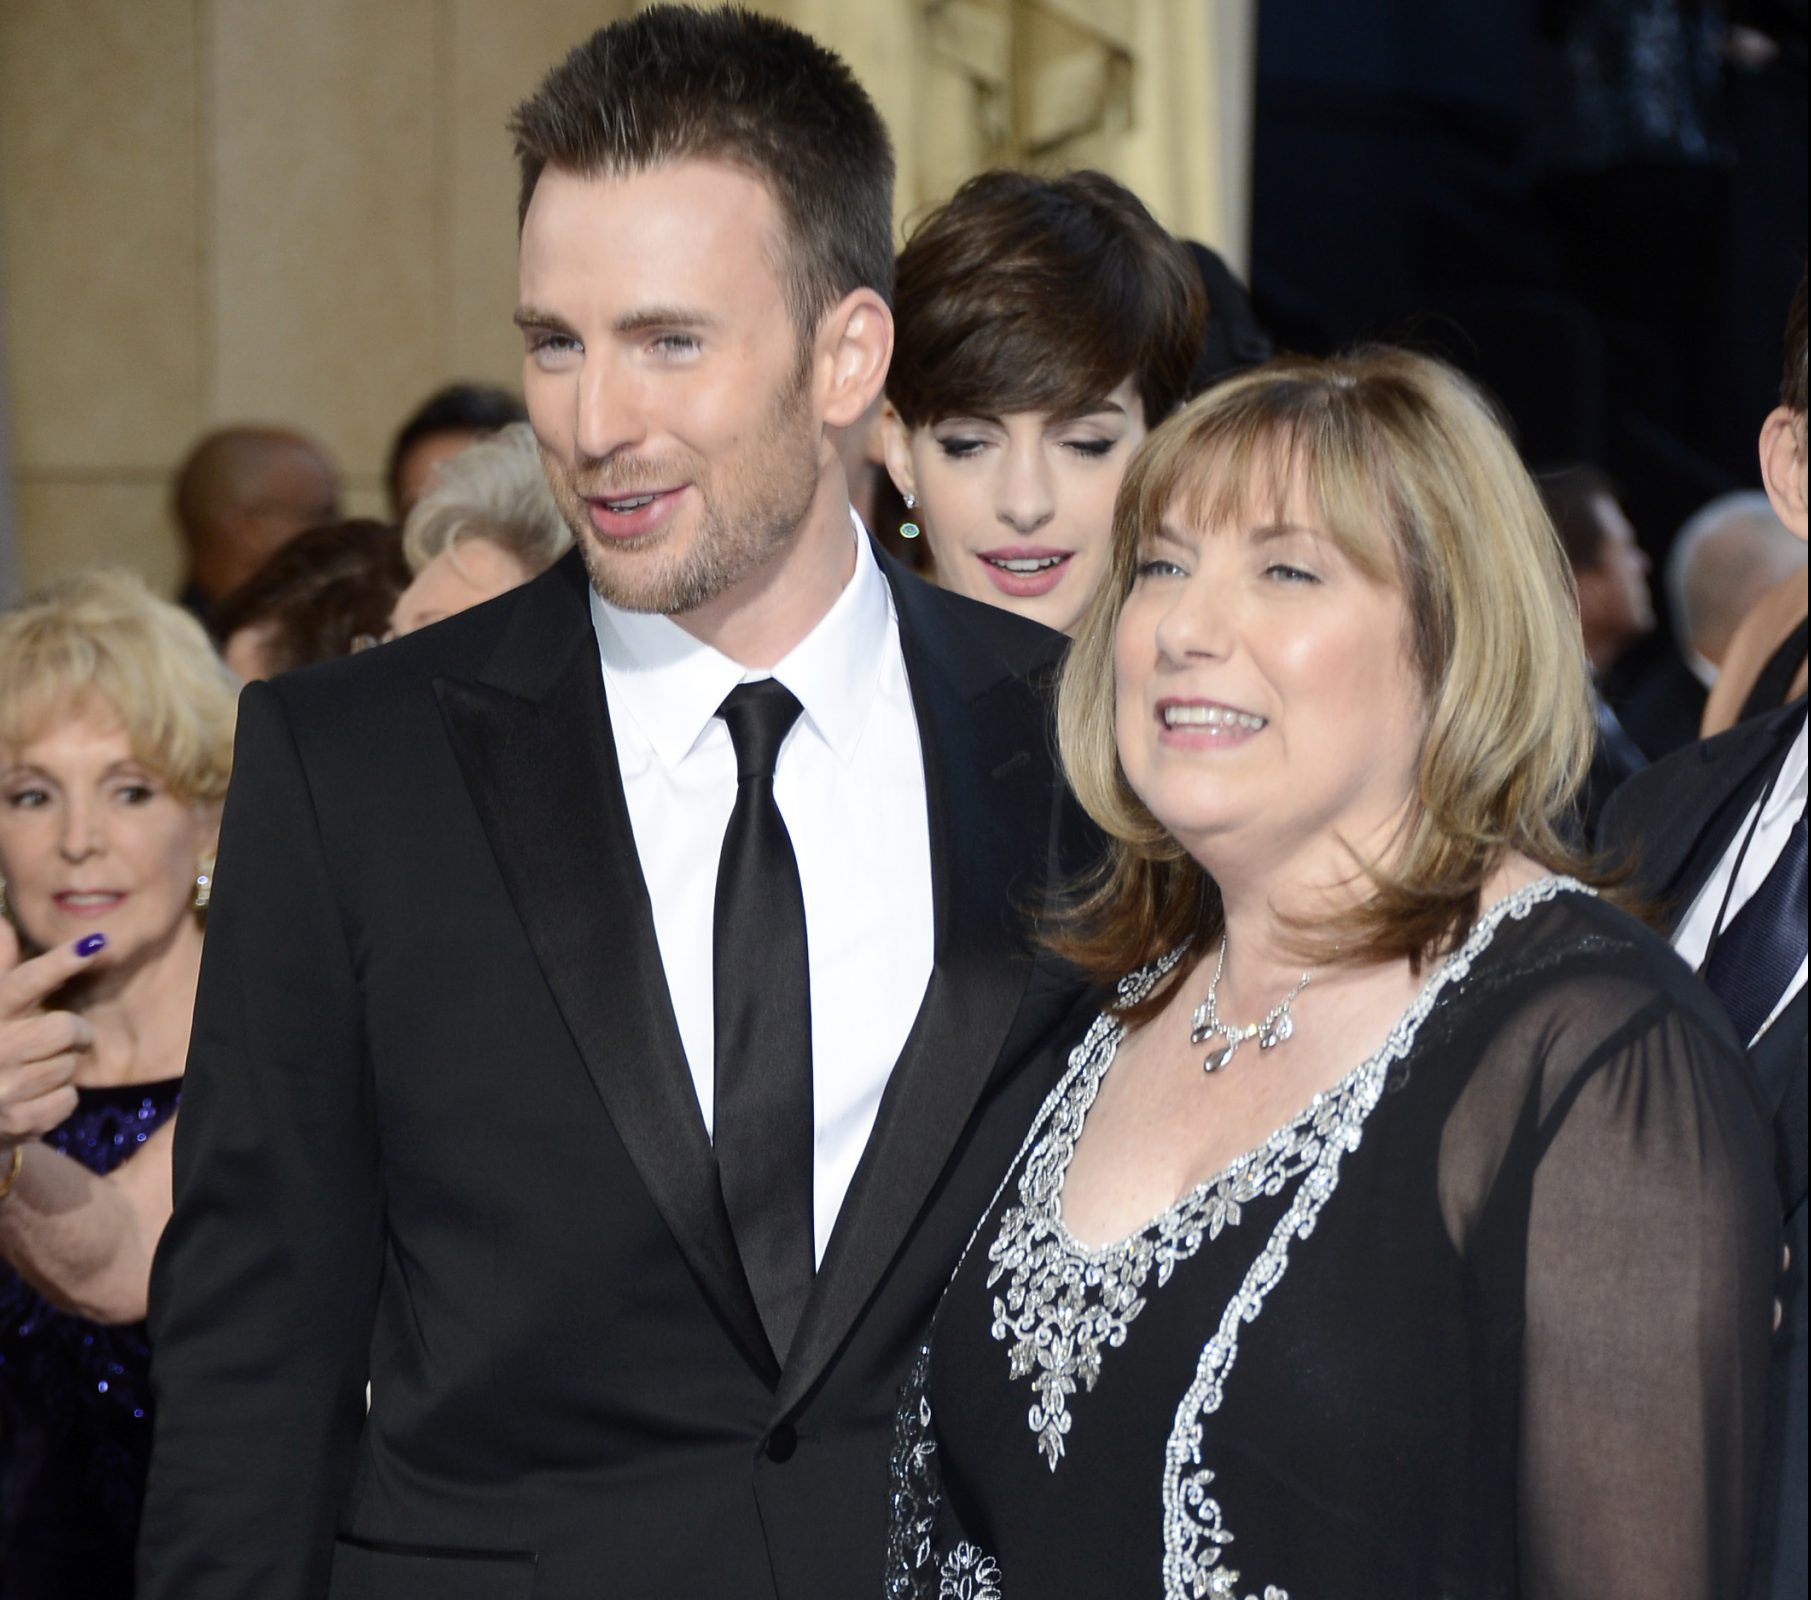 gettyimages 162620250 scaled e1625669714519 20 Things You Didn't Know About Chris Evans